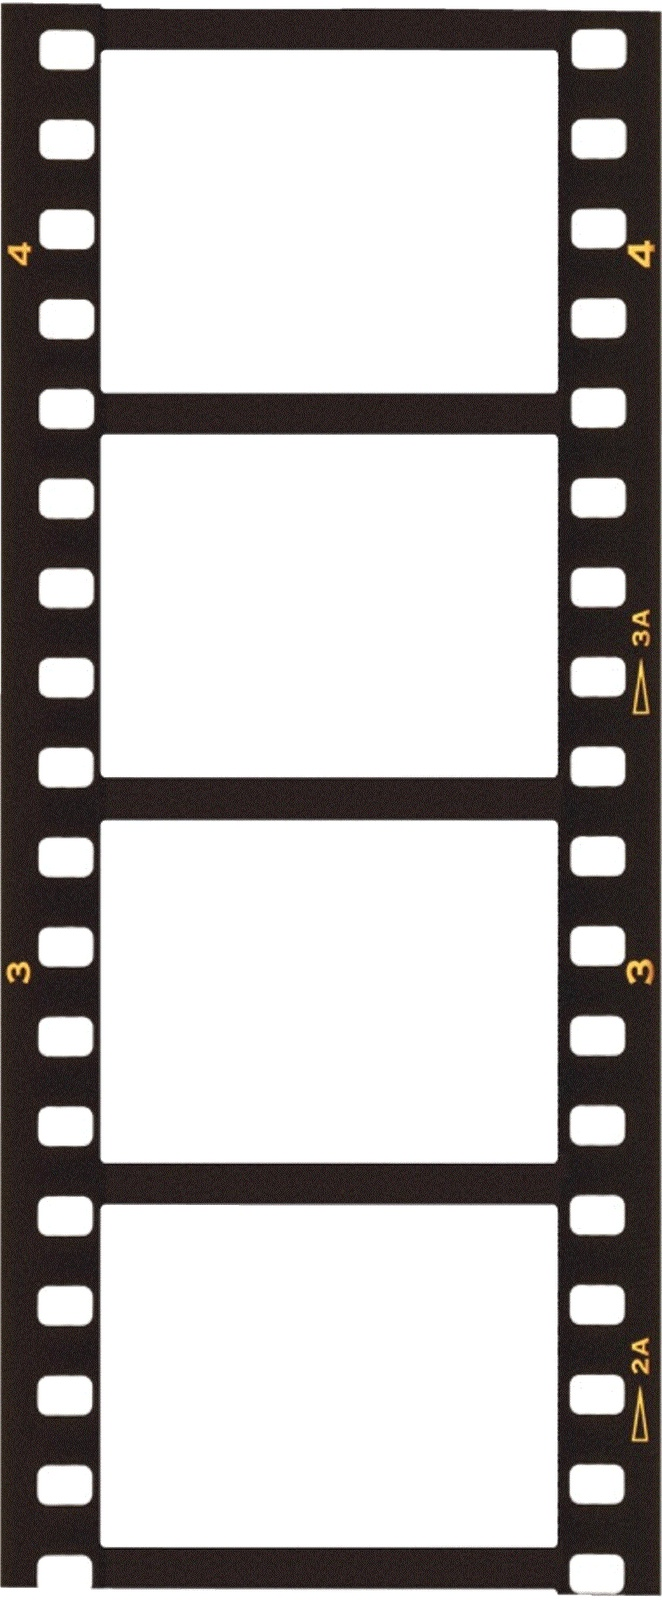 Free photo booth strip templates search results for Film strip picture template